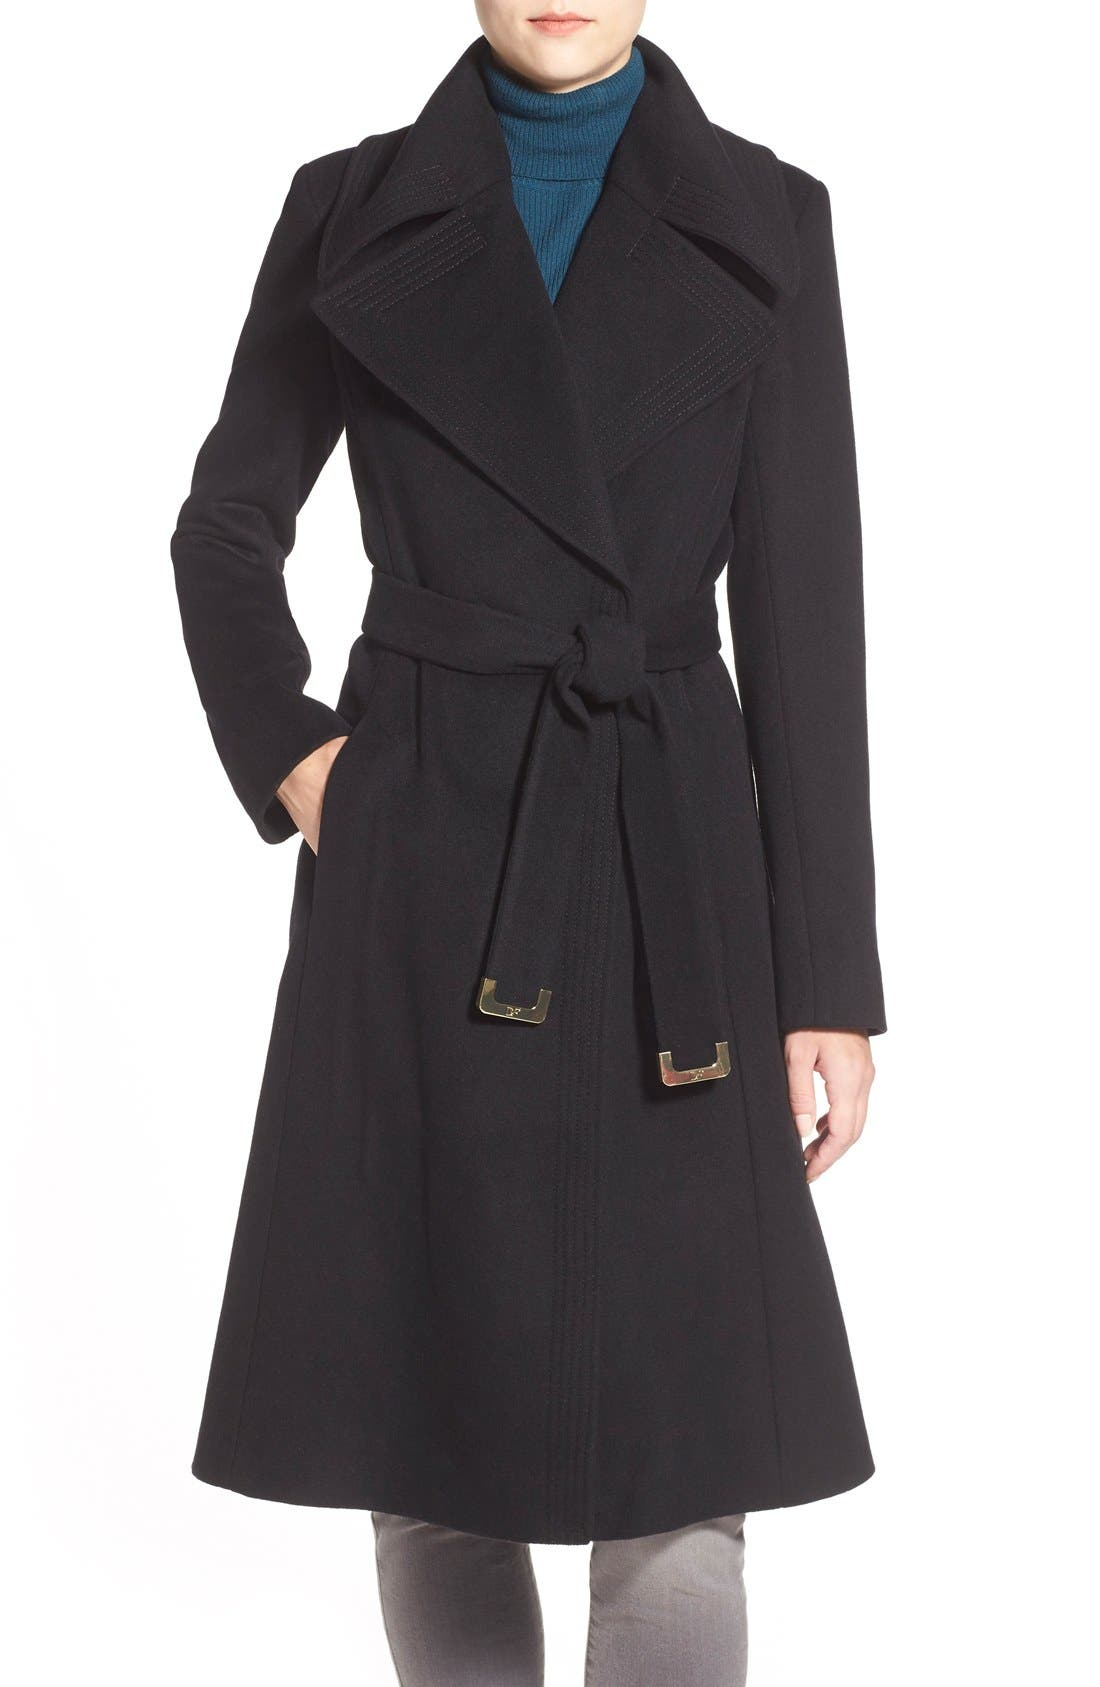 DIANE VON FURSTENBERG,                             Long Wool Blend Wrap Coat,                             Main thumbnail 1, color,                             001